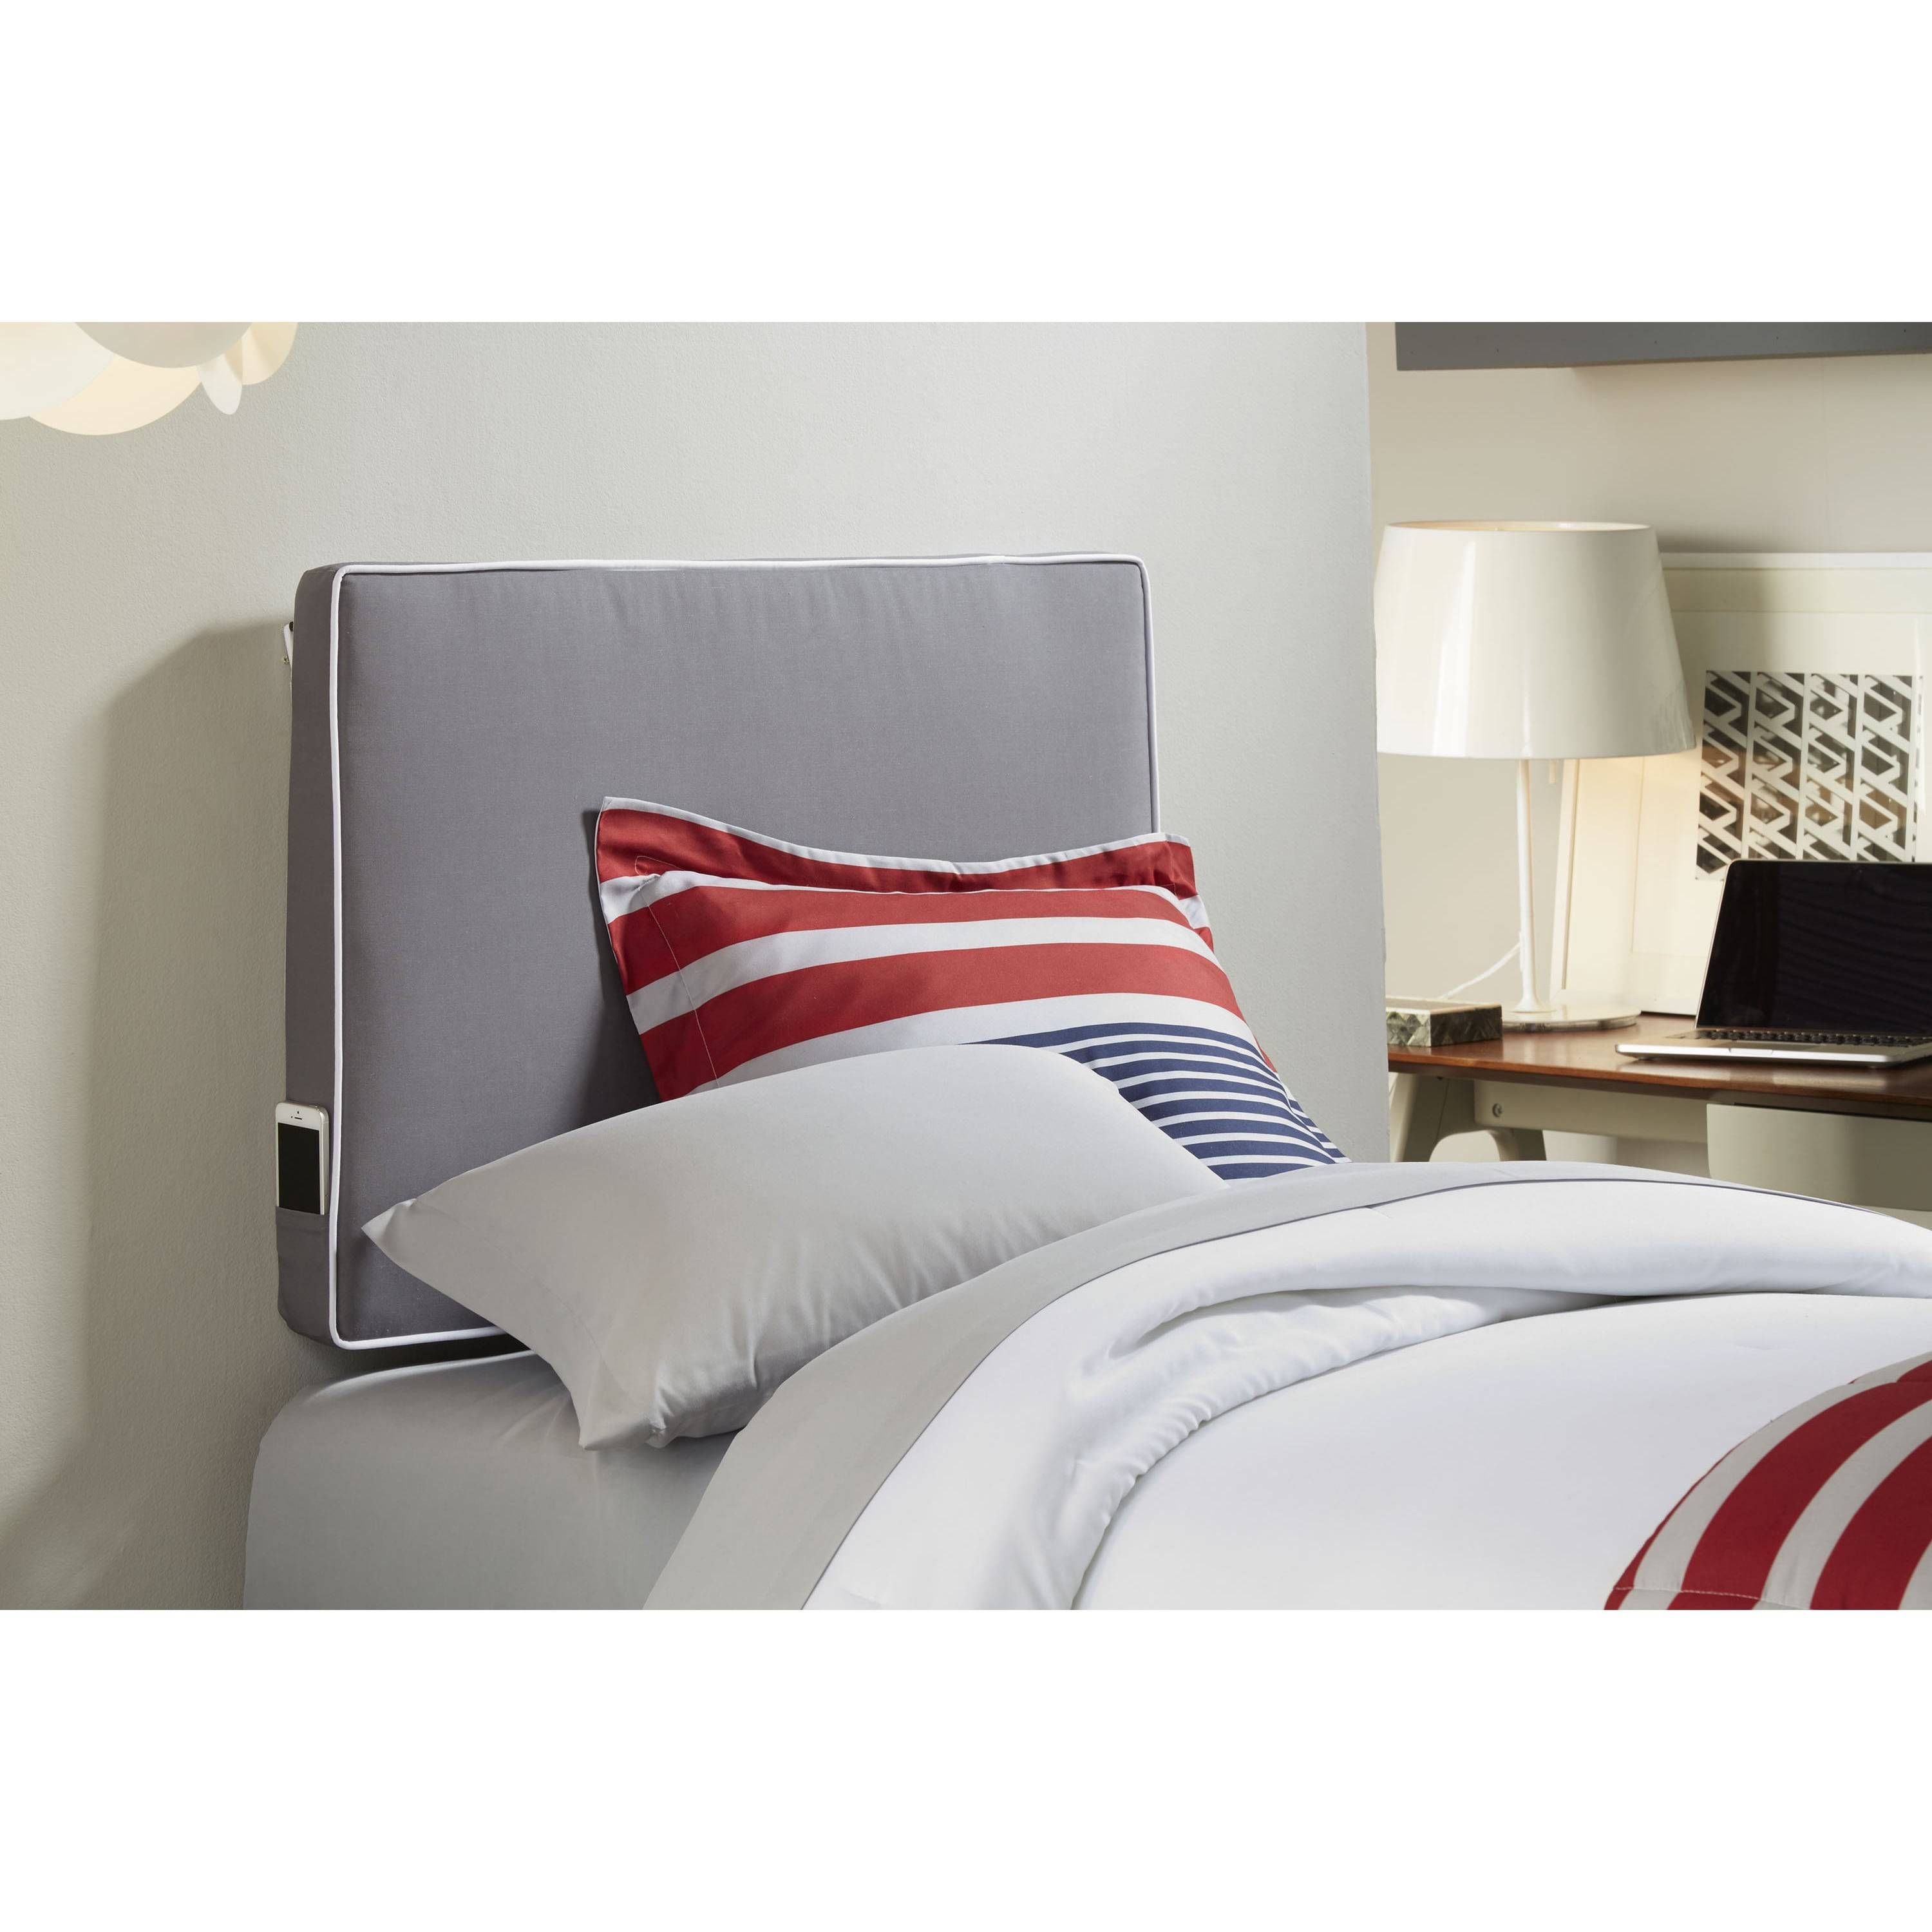 pillow and bed of places to pillows beautiful k logo ideas elegant pillows ideas intended for places to pillows lovely sitting up in bed pillow elegant pillows ideas long pillow awes